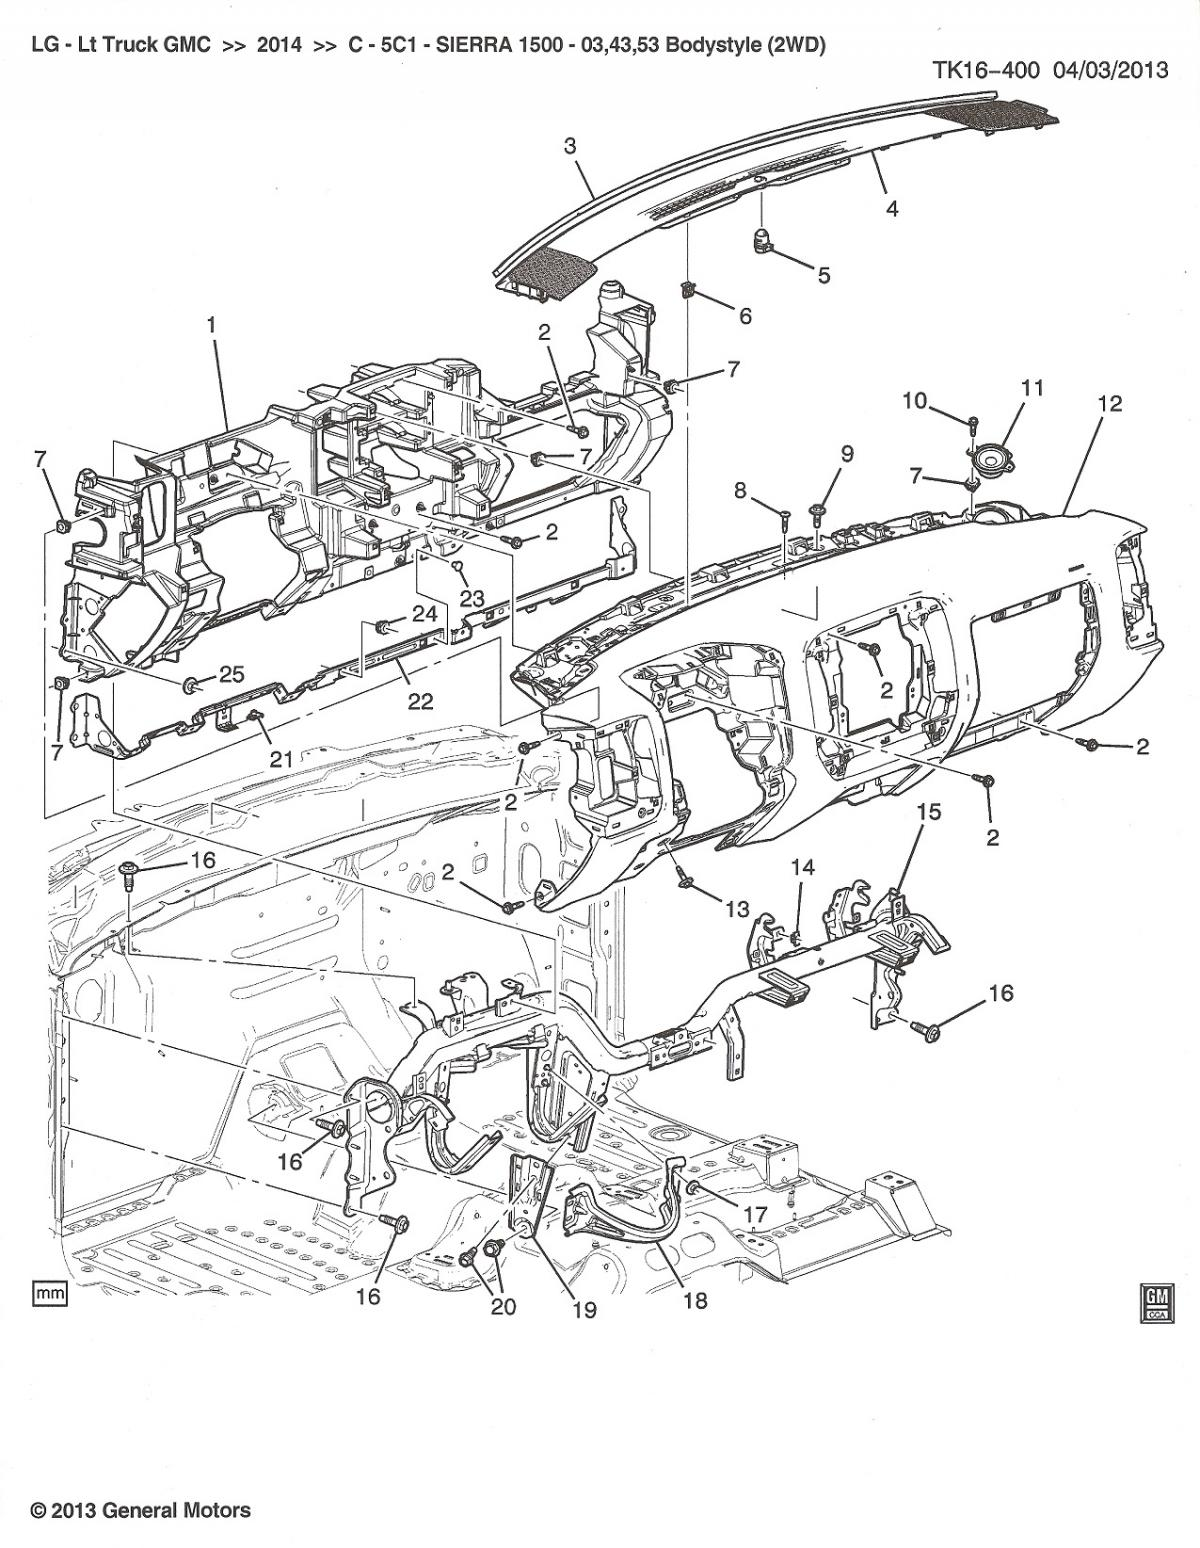 Diagram Chevy Silverado Parts Diagram Full Version Hd Quality Parts Diagram